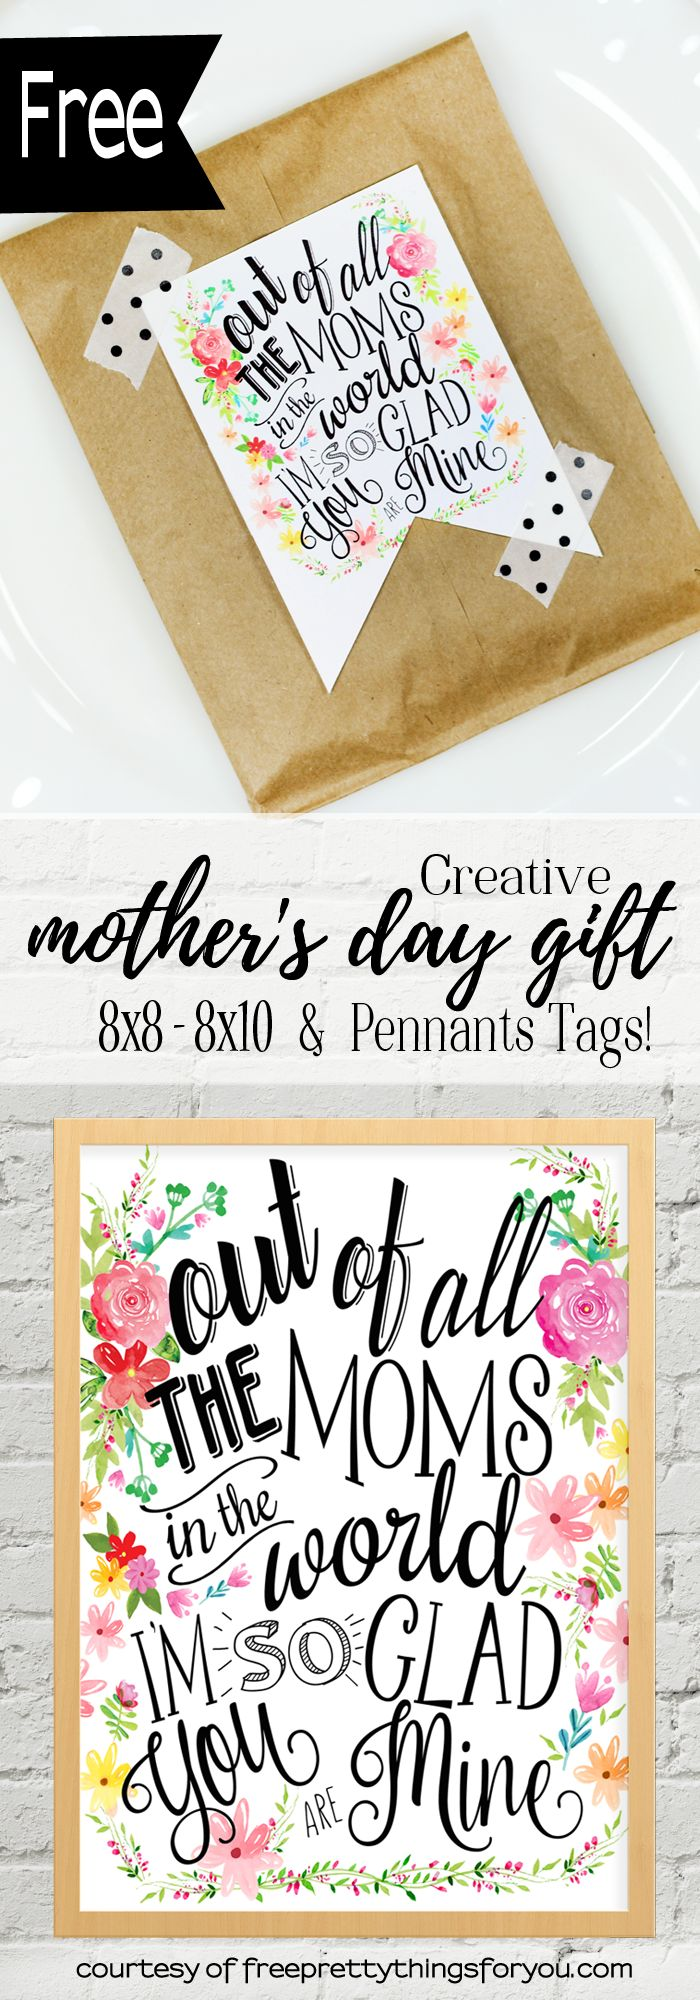 Best 25 Free printable cards ideas – Free Printable Mother Birthday Cards